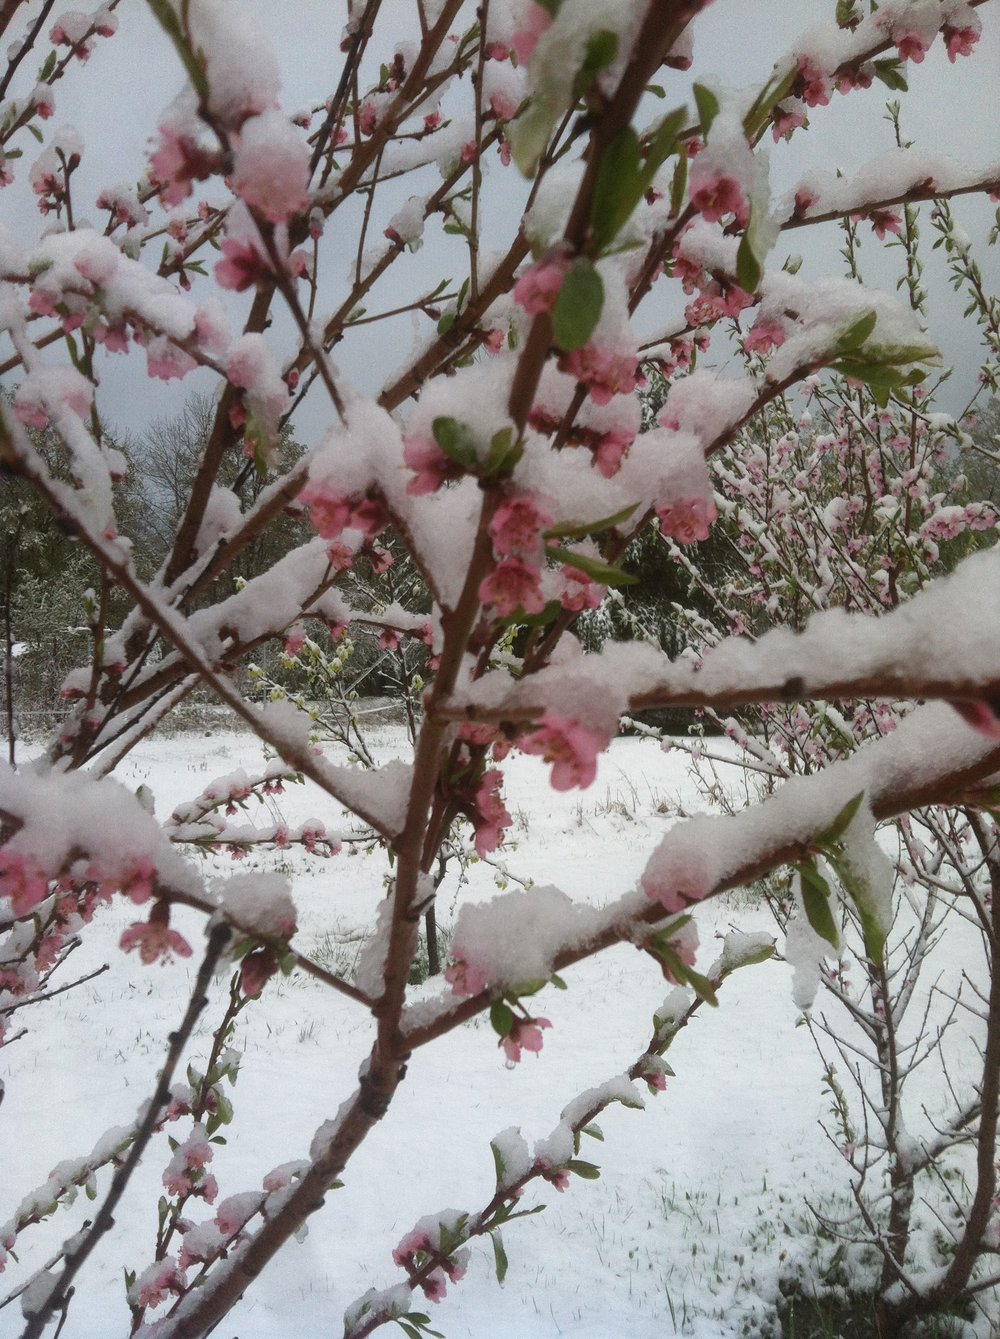 Peach blossoms with snow on Mother's Day.